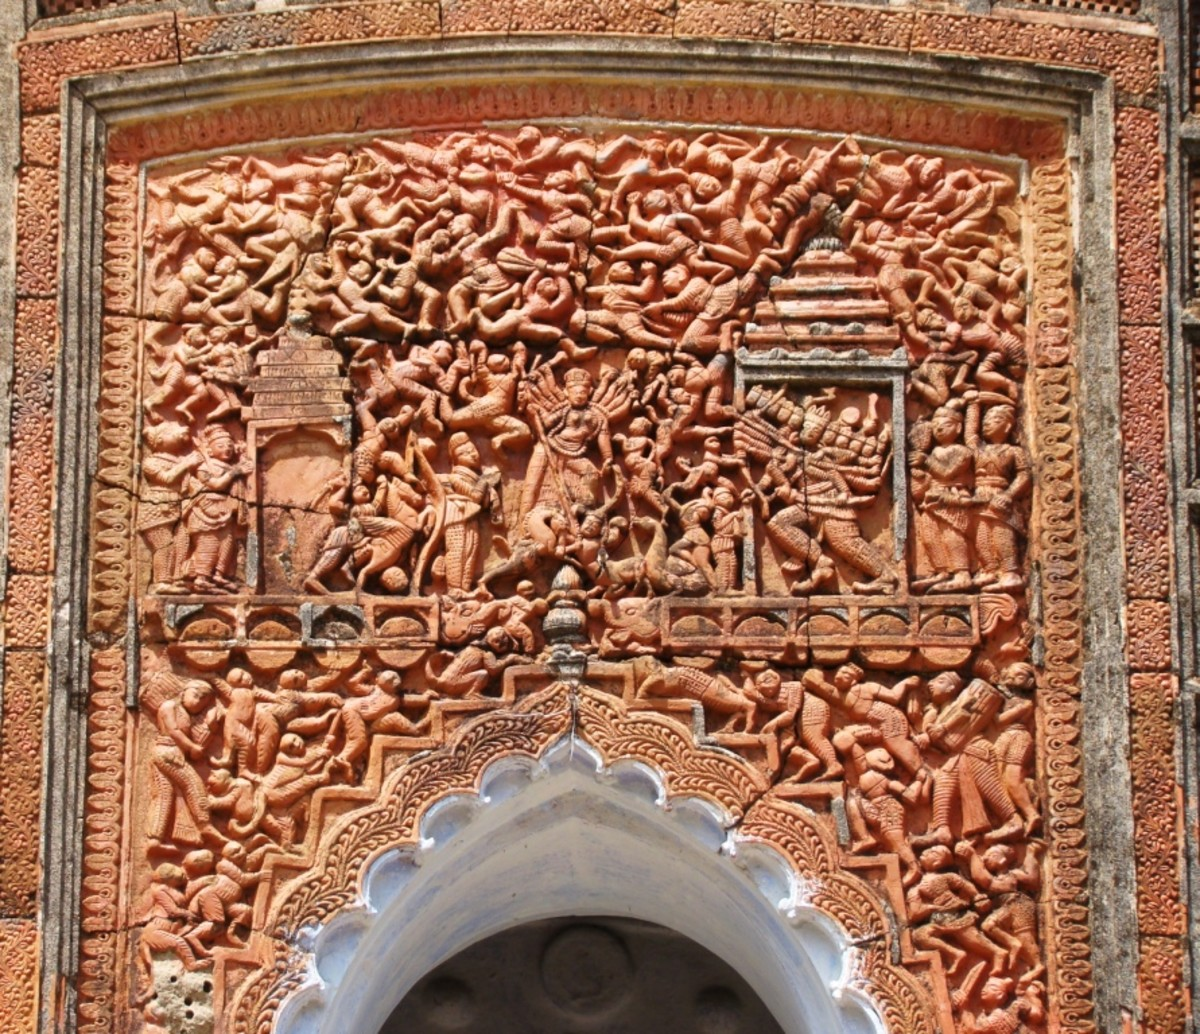 Rich terracotta art on the front facade of Navaratna temple of Mejo Taraf